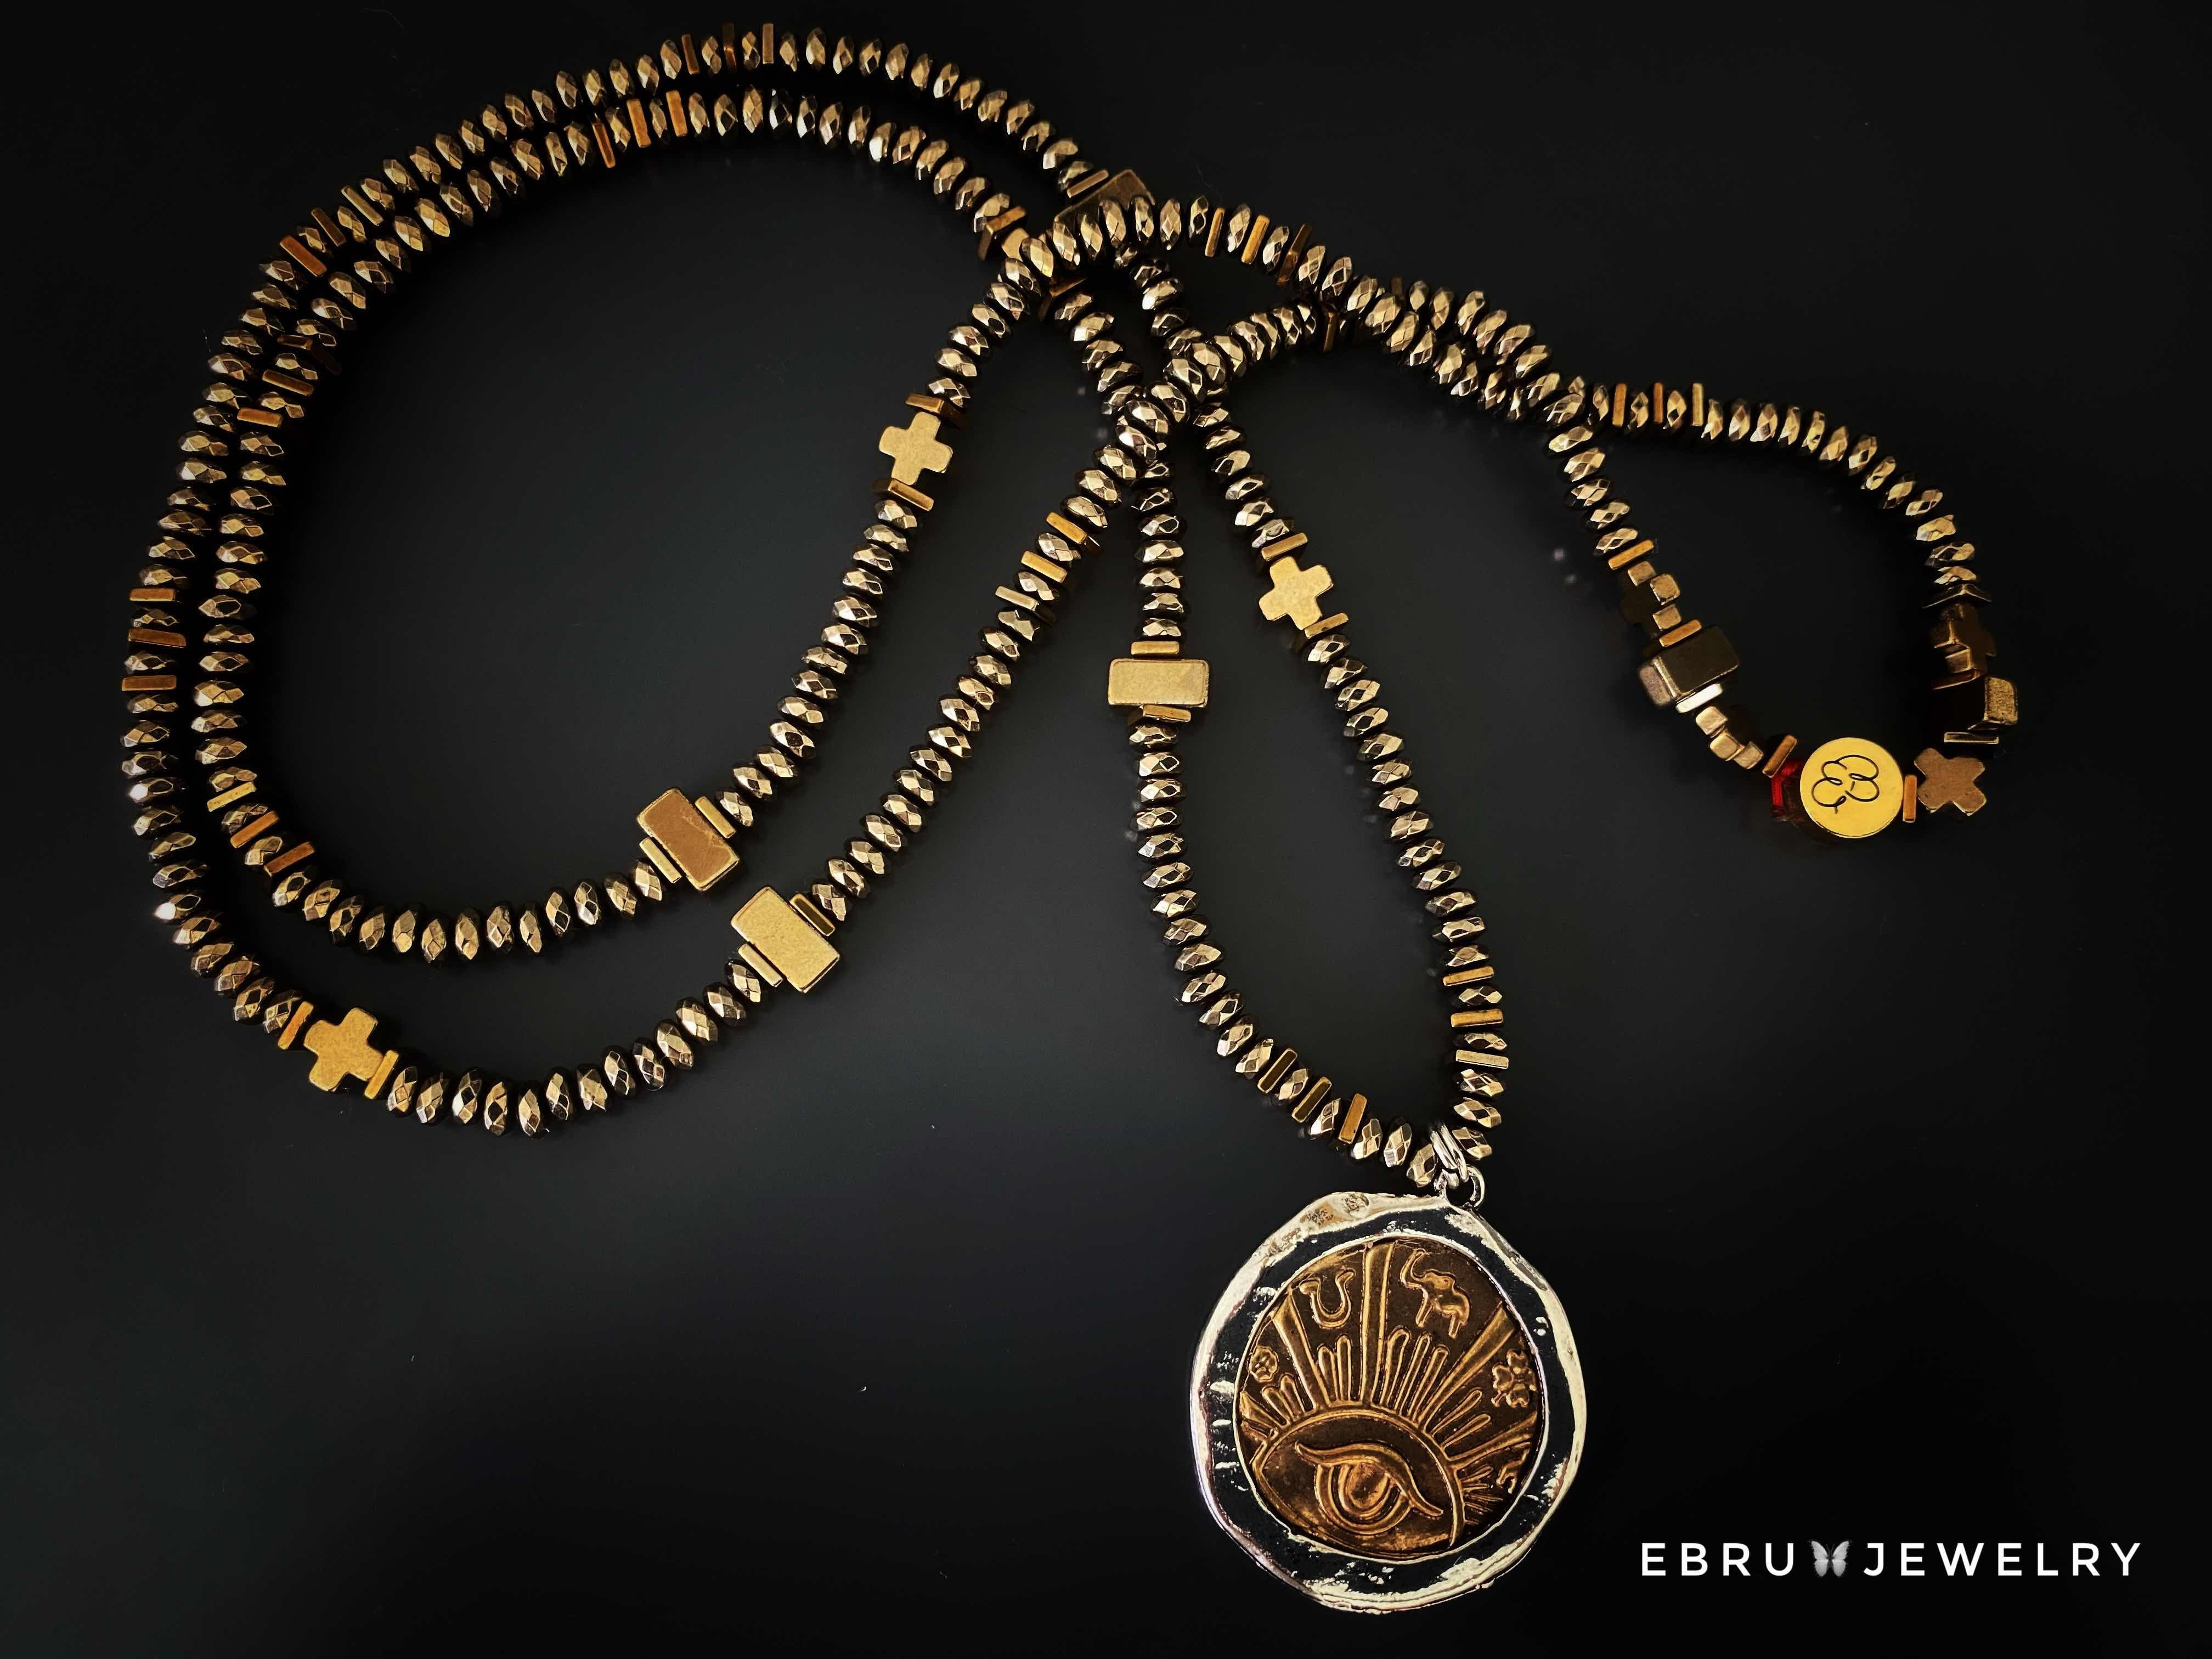 Special Symbols & Good Luck Necklace - EBRU JEWELRY